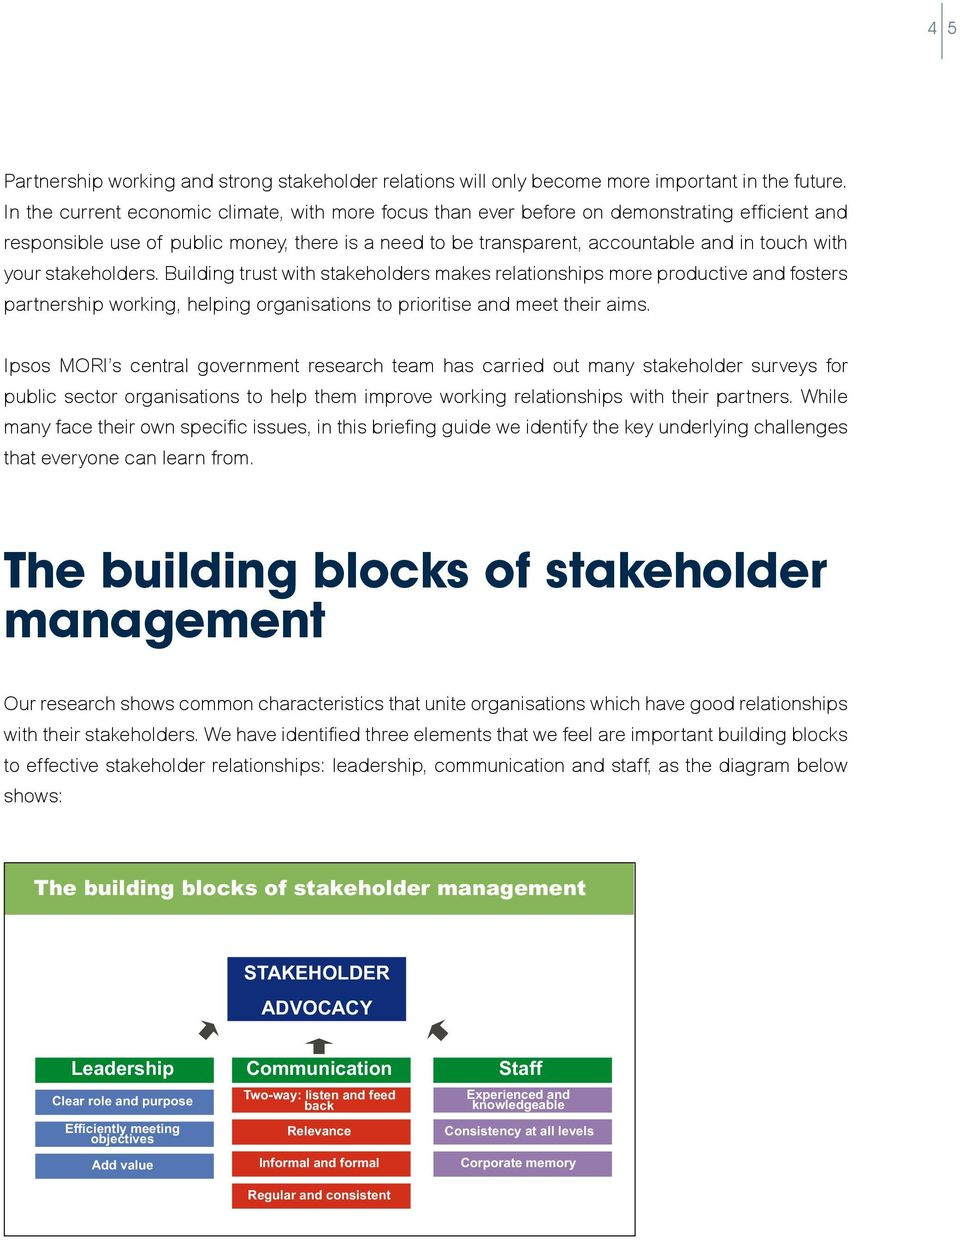 stakeholders. Building trust with stakeholders makes relationships more productive and fosters partnership working, helping organisations to prioritise and meet their aims.